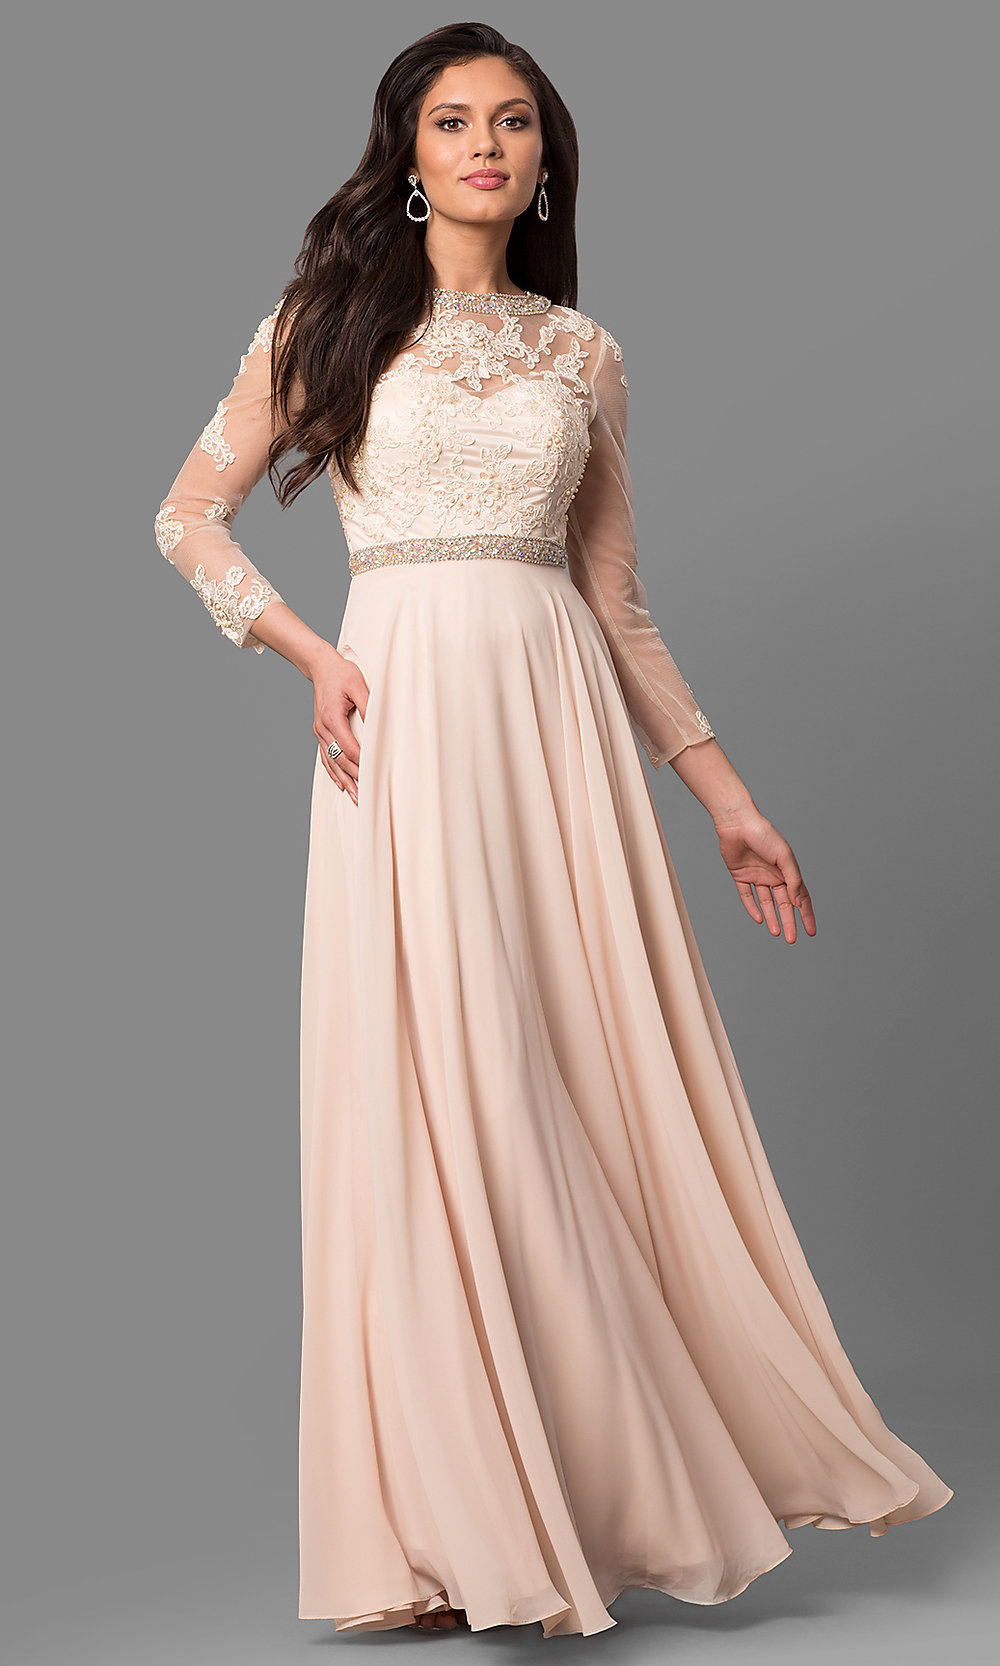 Long-Sleeve Formal Mother-of-the-Bride Long Dress